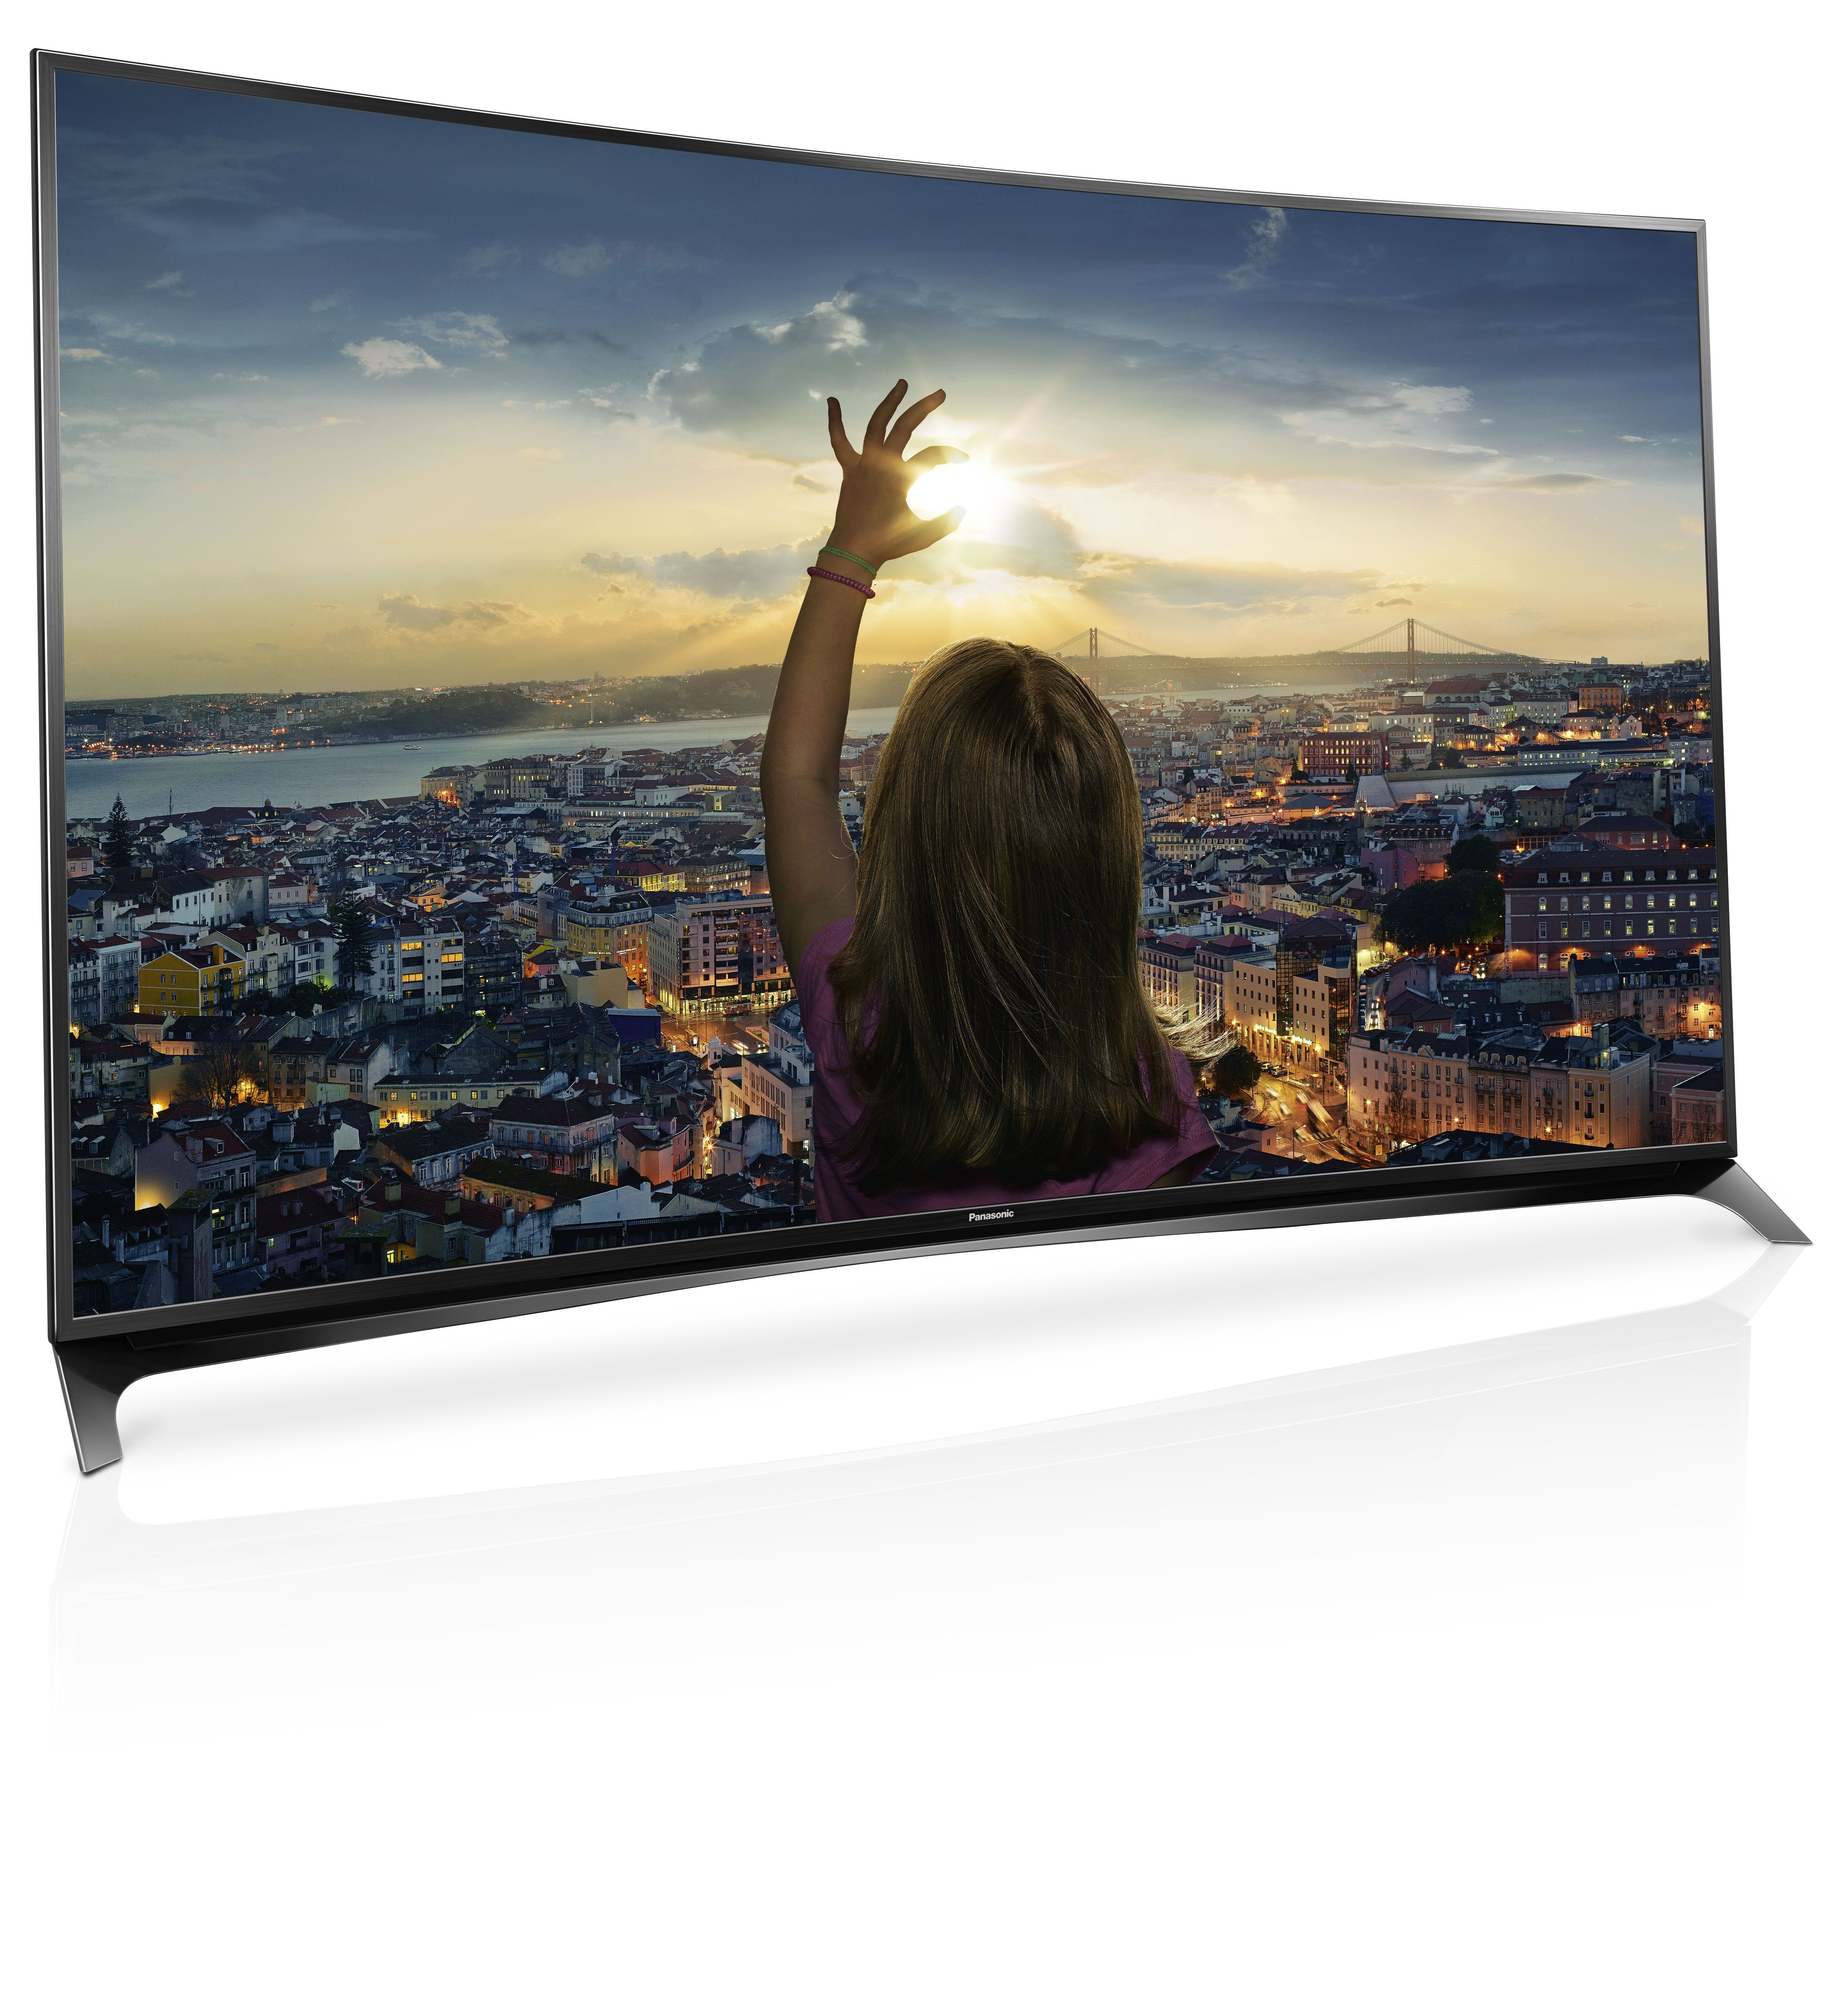 e57fbf276da0 Panasonic enters curved television game with Viera CR850 series